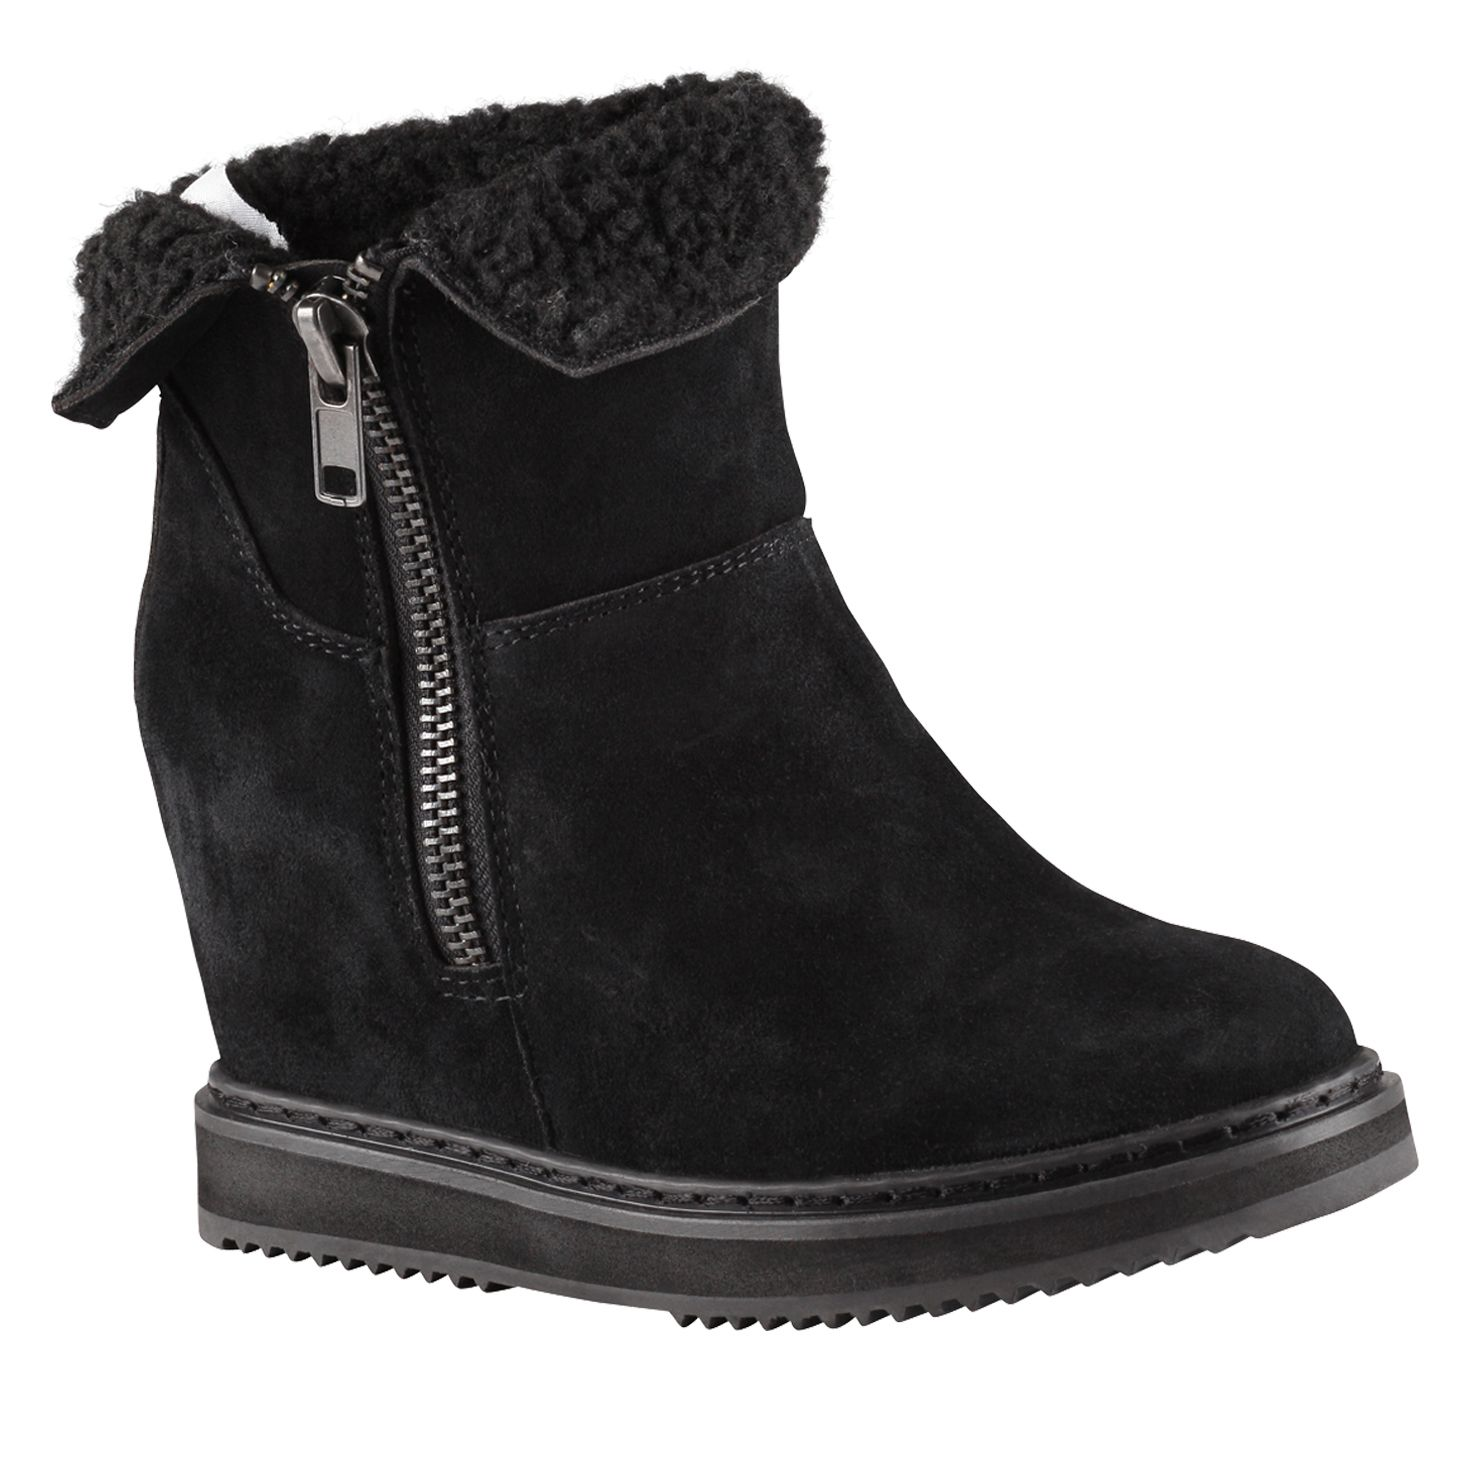 Lenice round toe wedge boots